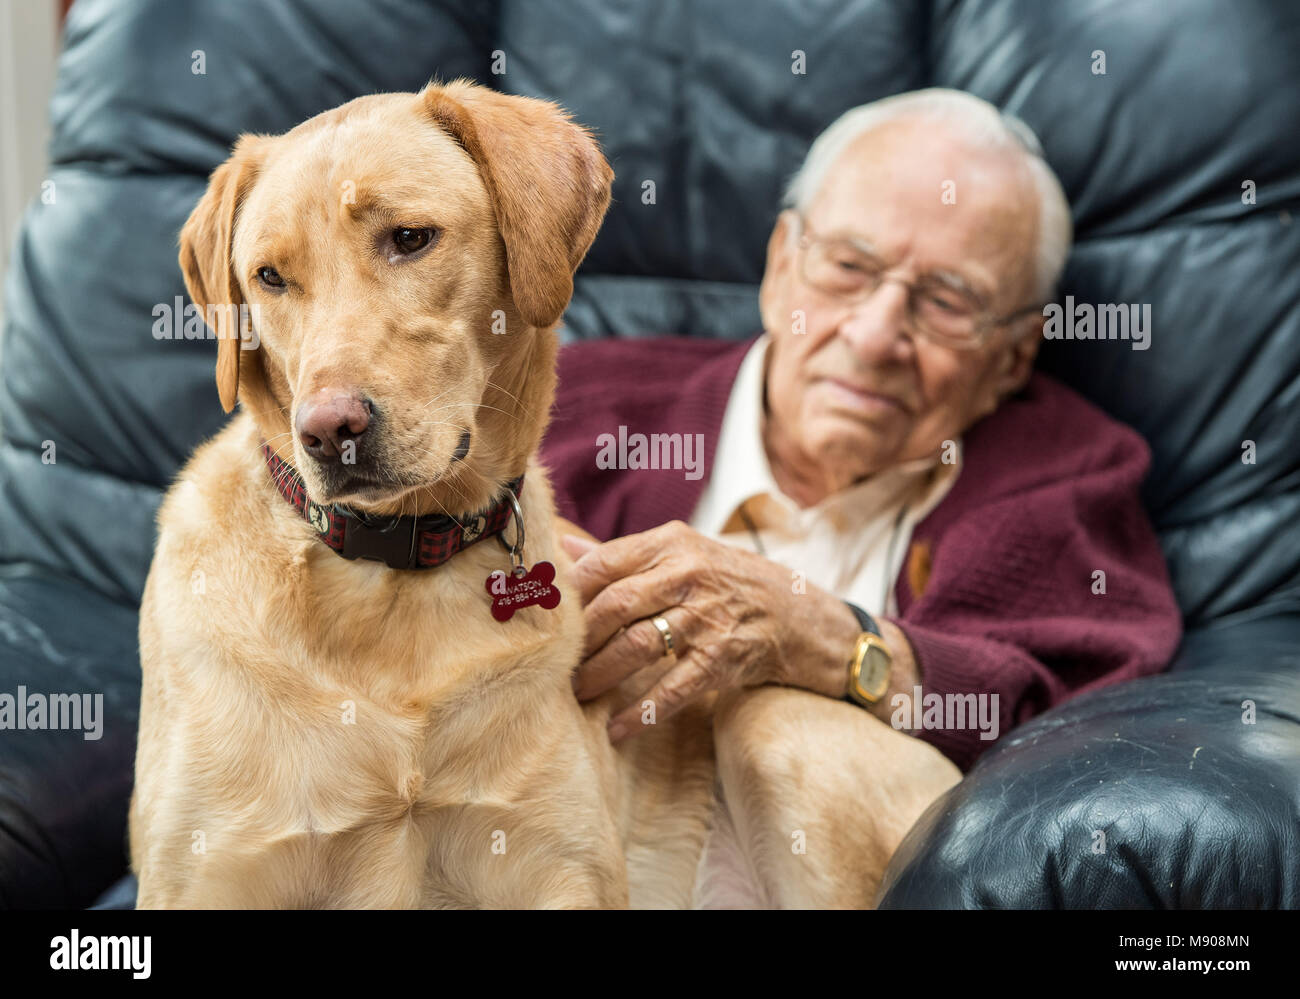 Grandpa with his yellow lab in his lap - Stock Image